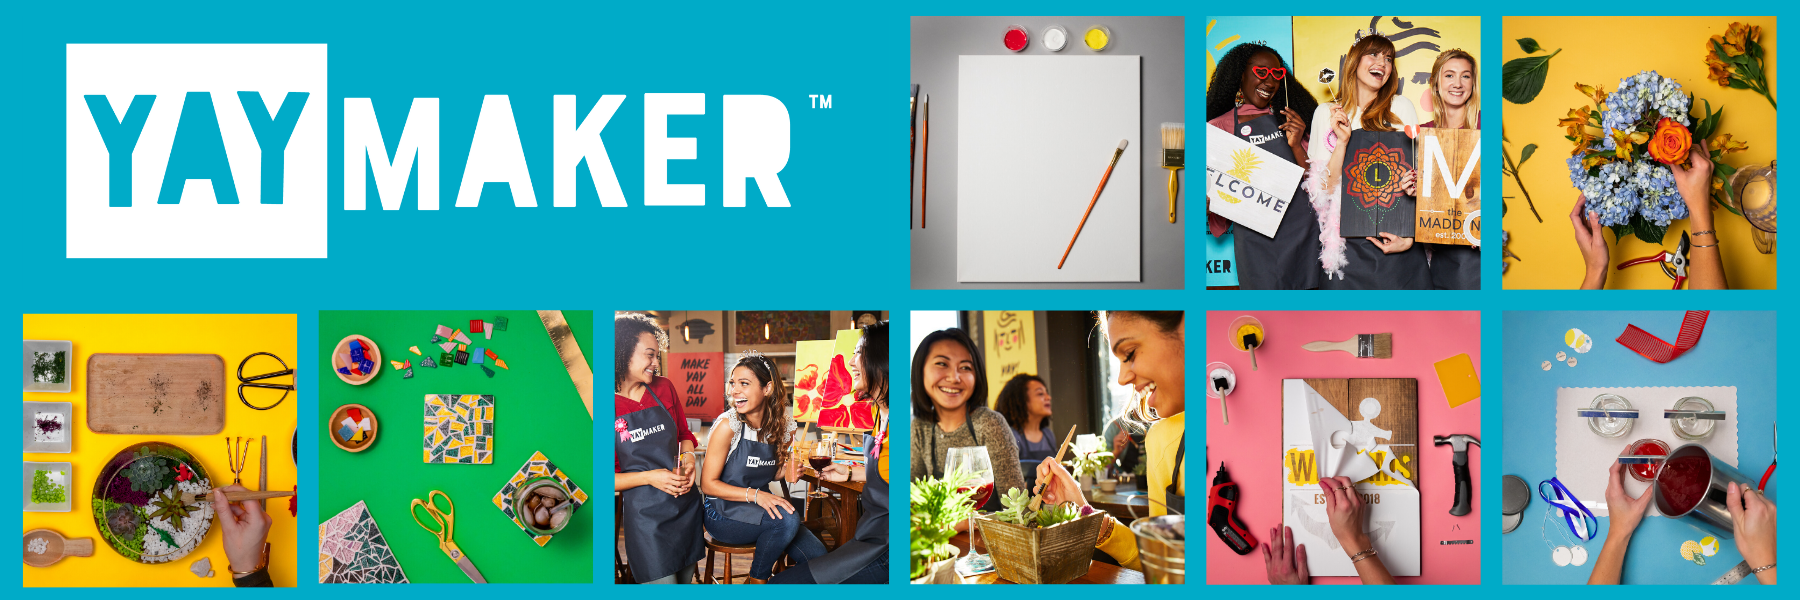 Yaymaker- Original Paint Nite Offering Craft Classes  Across New Jersey